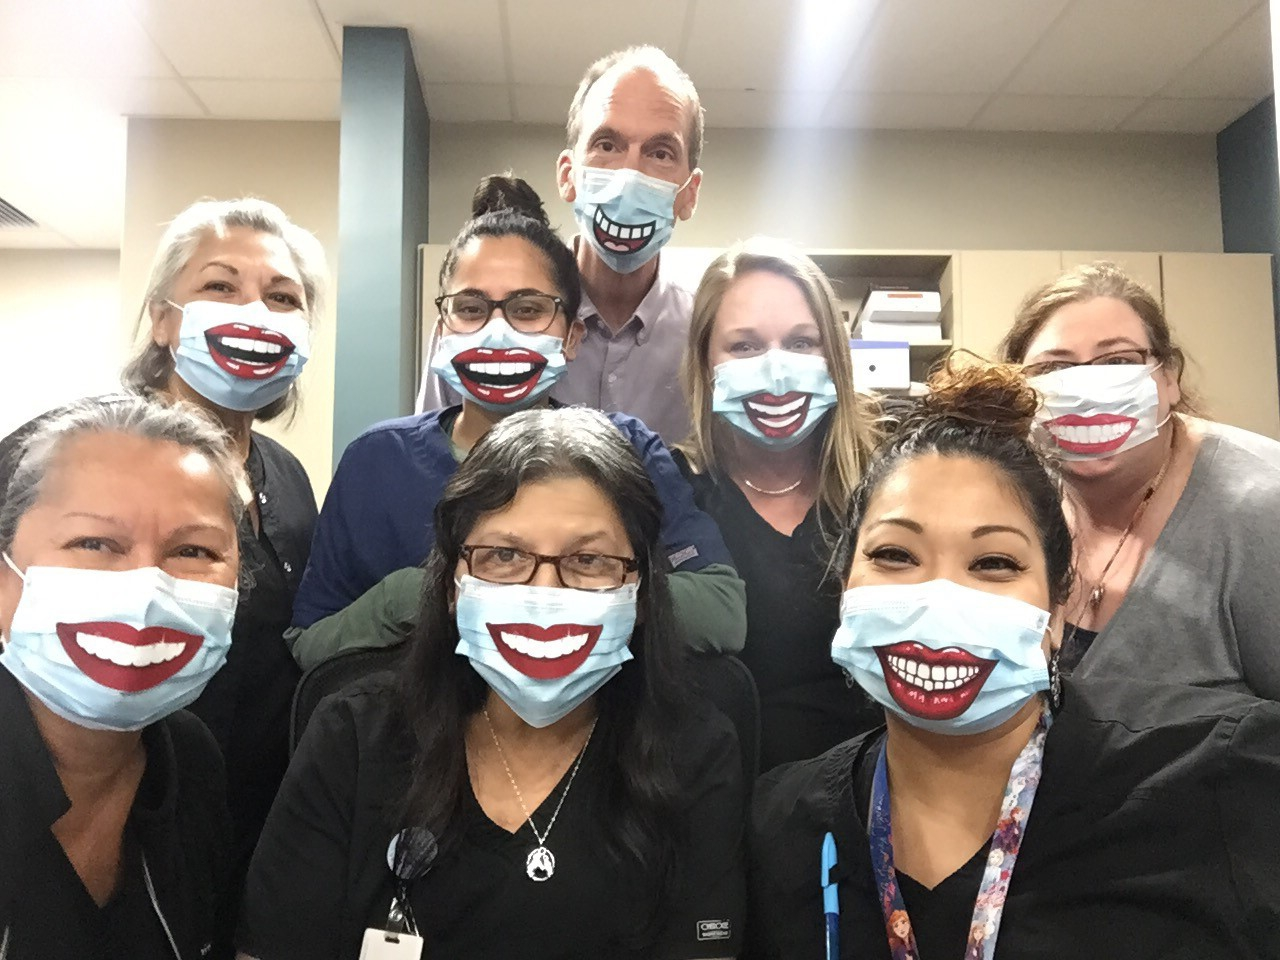 Premise Health team members staying safe while providing high-quality care for our members during a pandemic